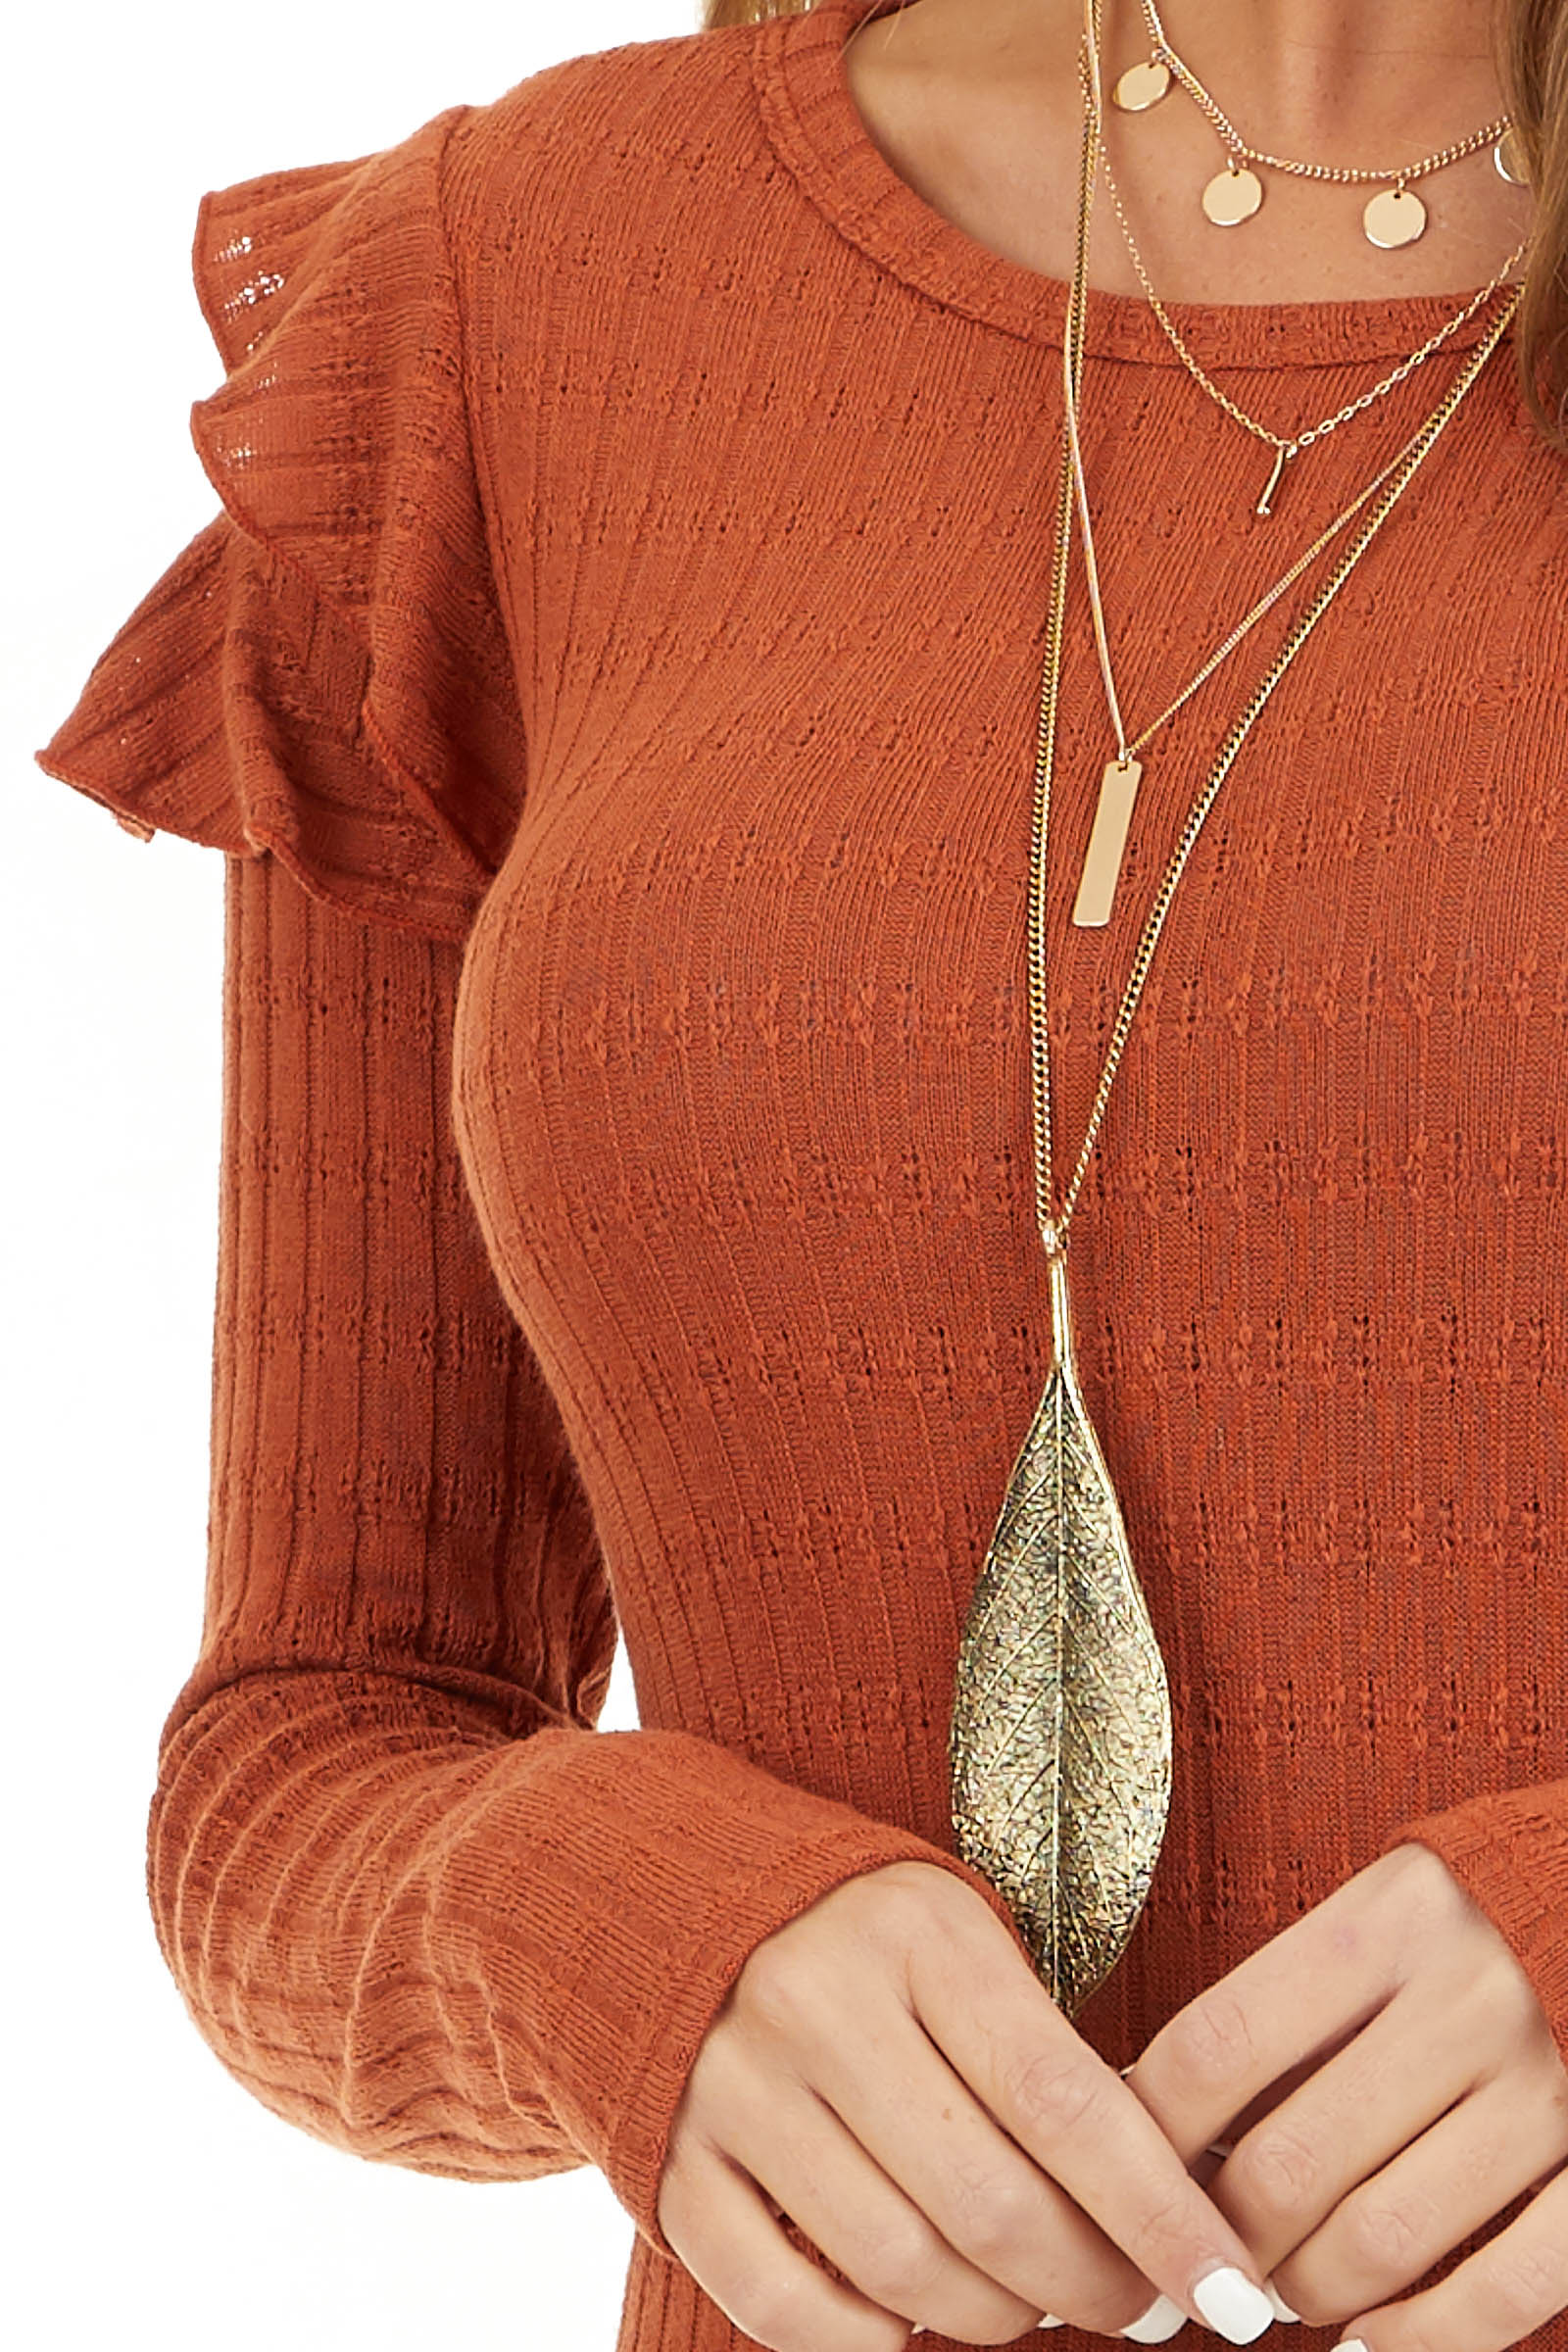 Rust Textured Knit Top with Long Sleeves and Ruffle Details detail